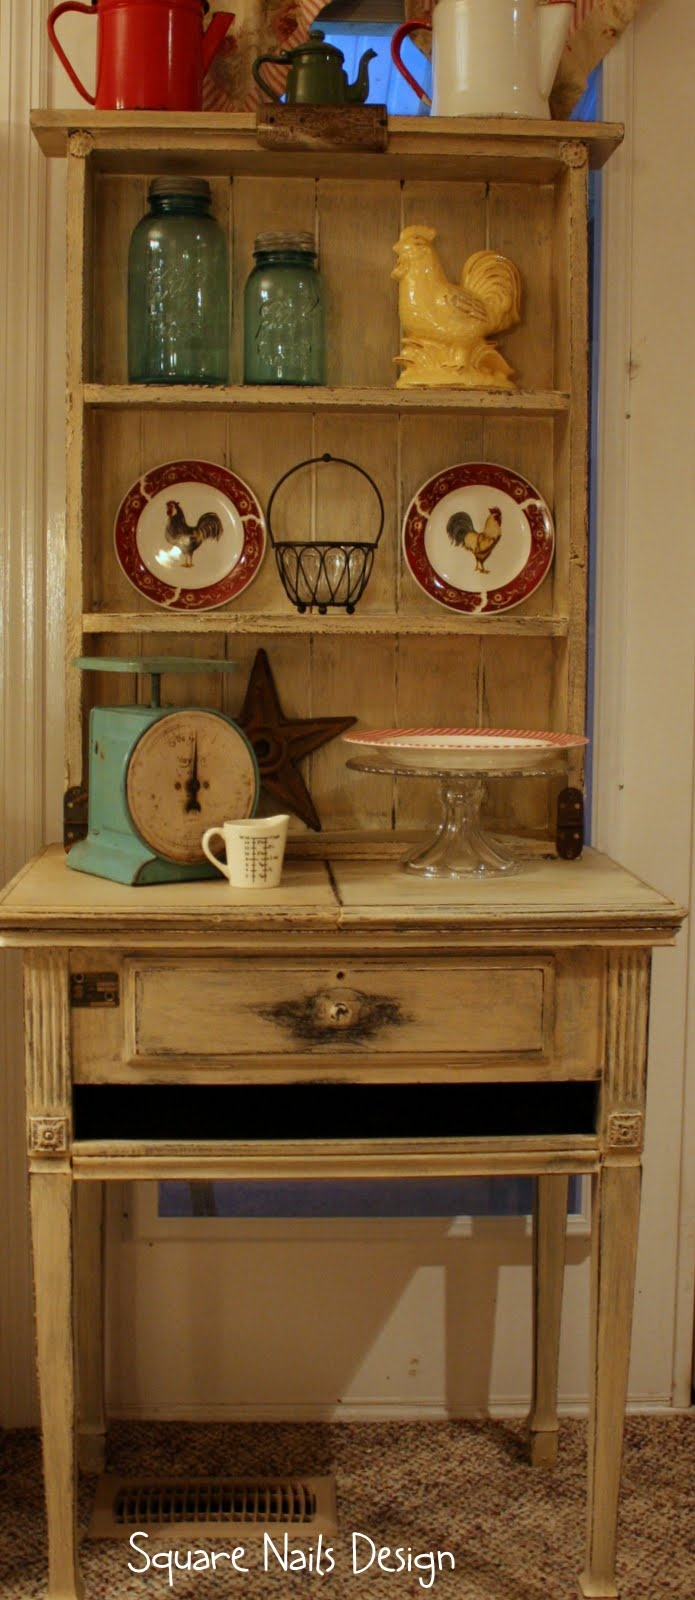 Square Nails Design: Sewing Machine Cabinet Upcycle